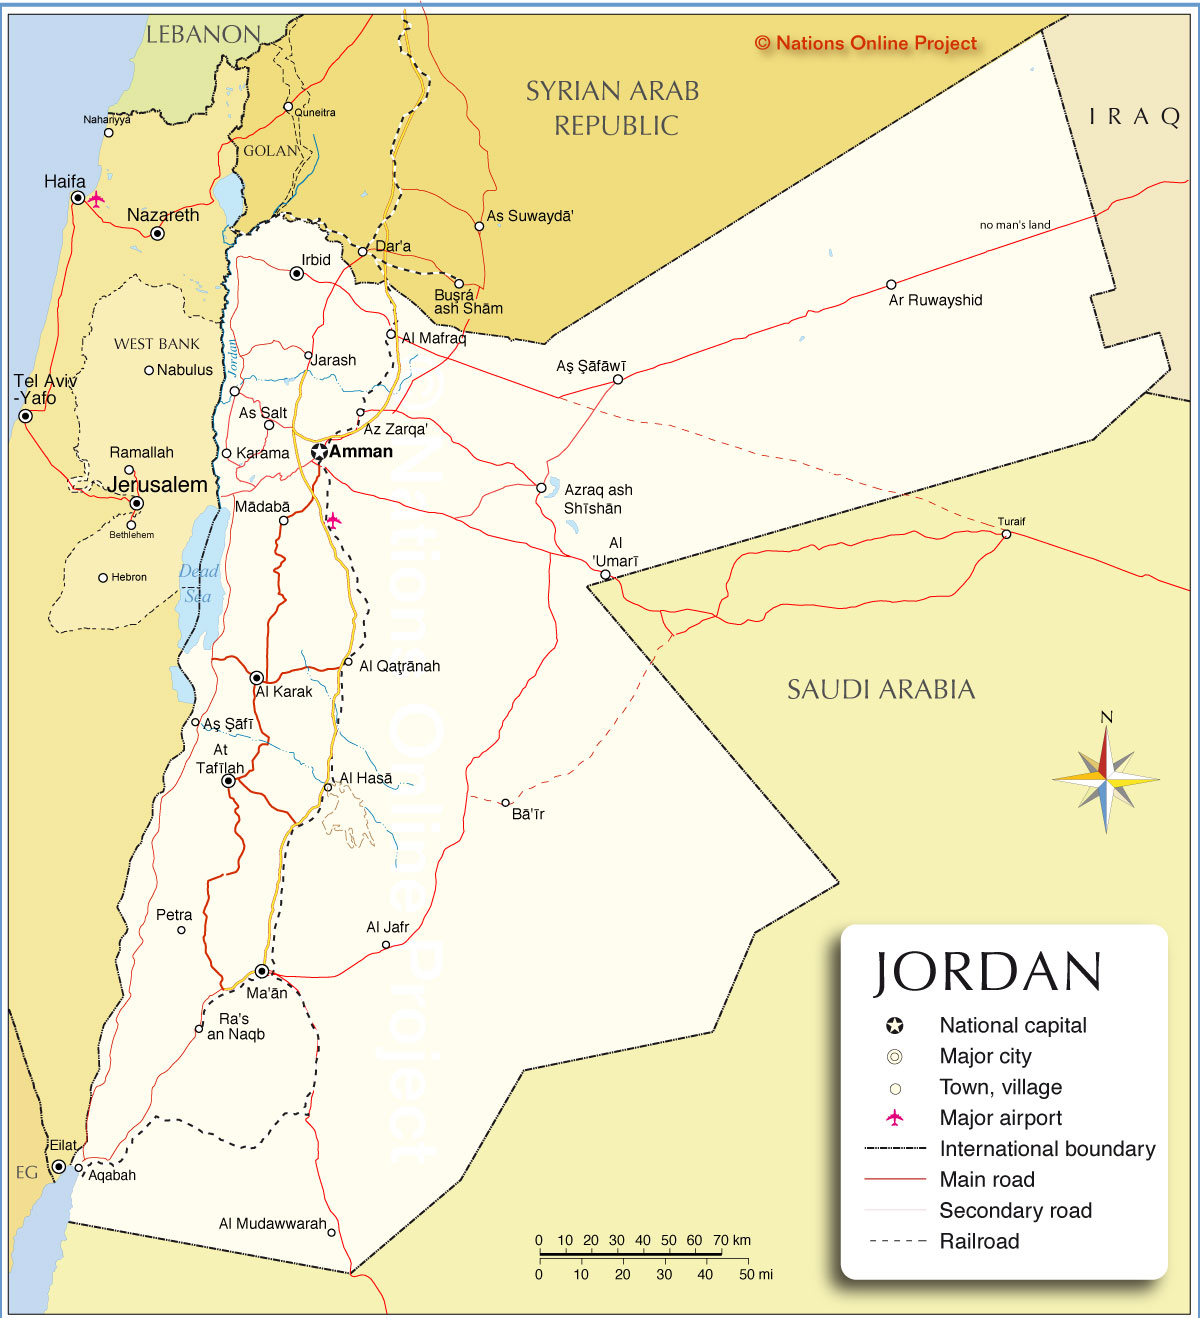 Political Map Of Jordan Nations Online Project - Jordan country in world map